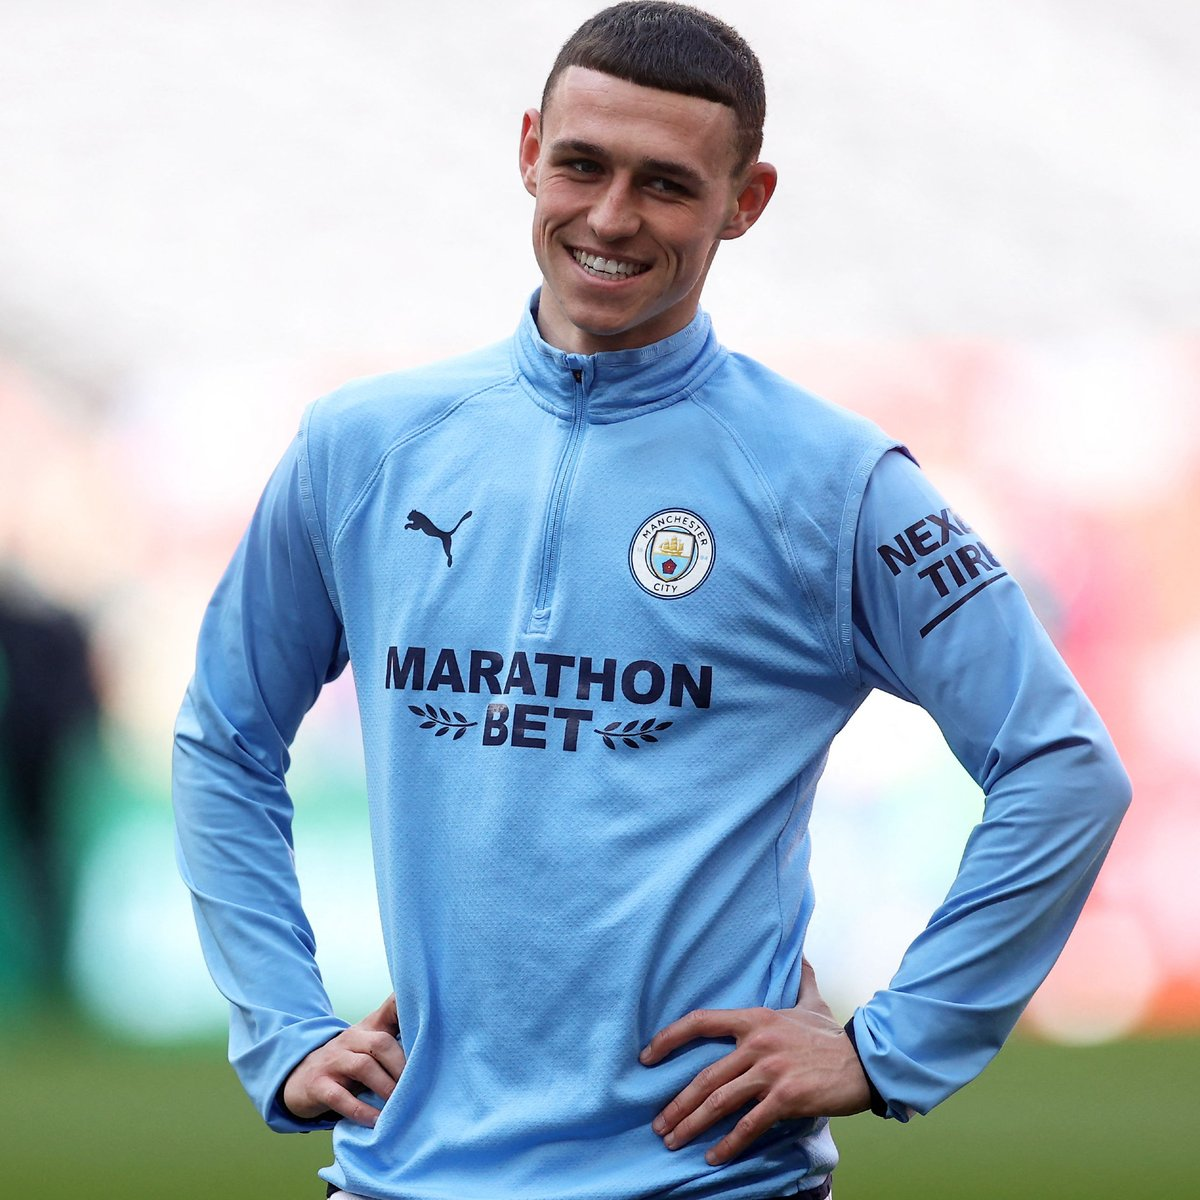 @goal's photo on Phil Foden